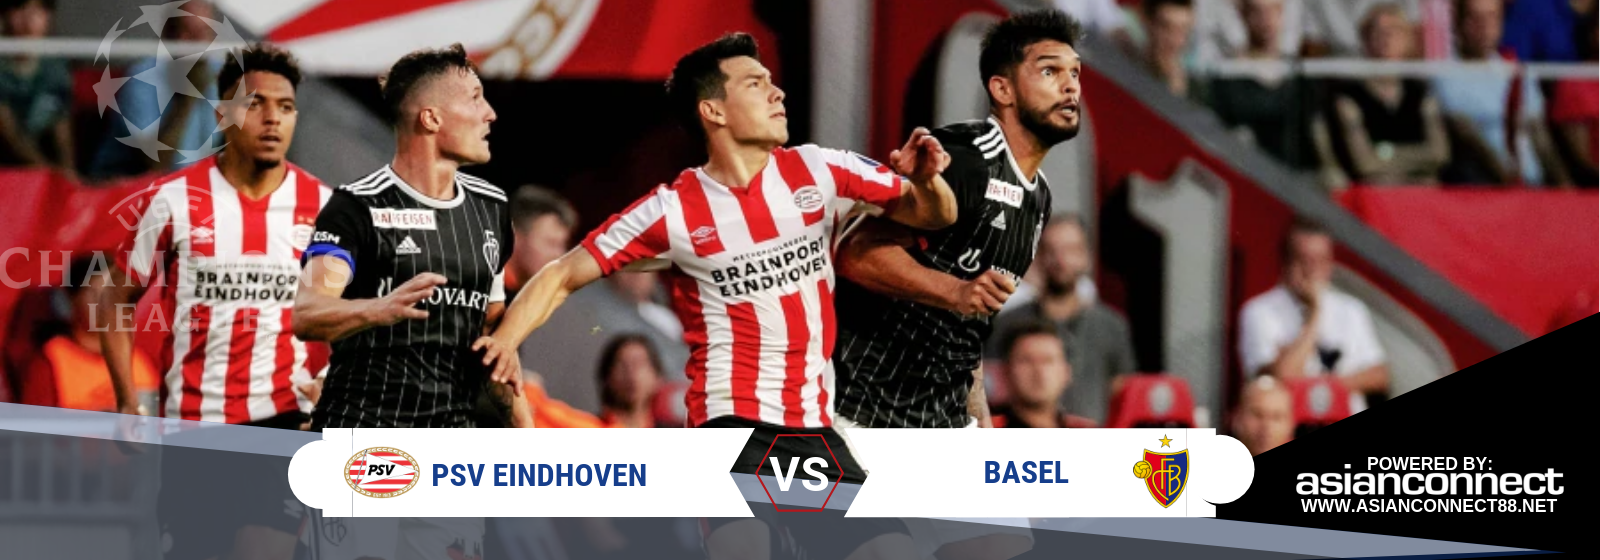 UCL PSV Eindhoven Vs. Basel Asian Connect